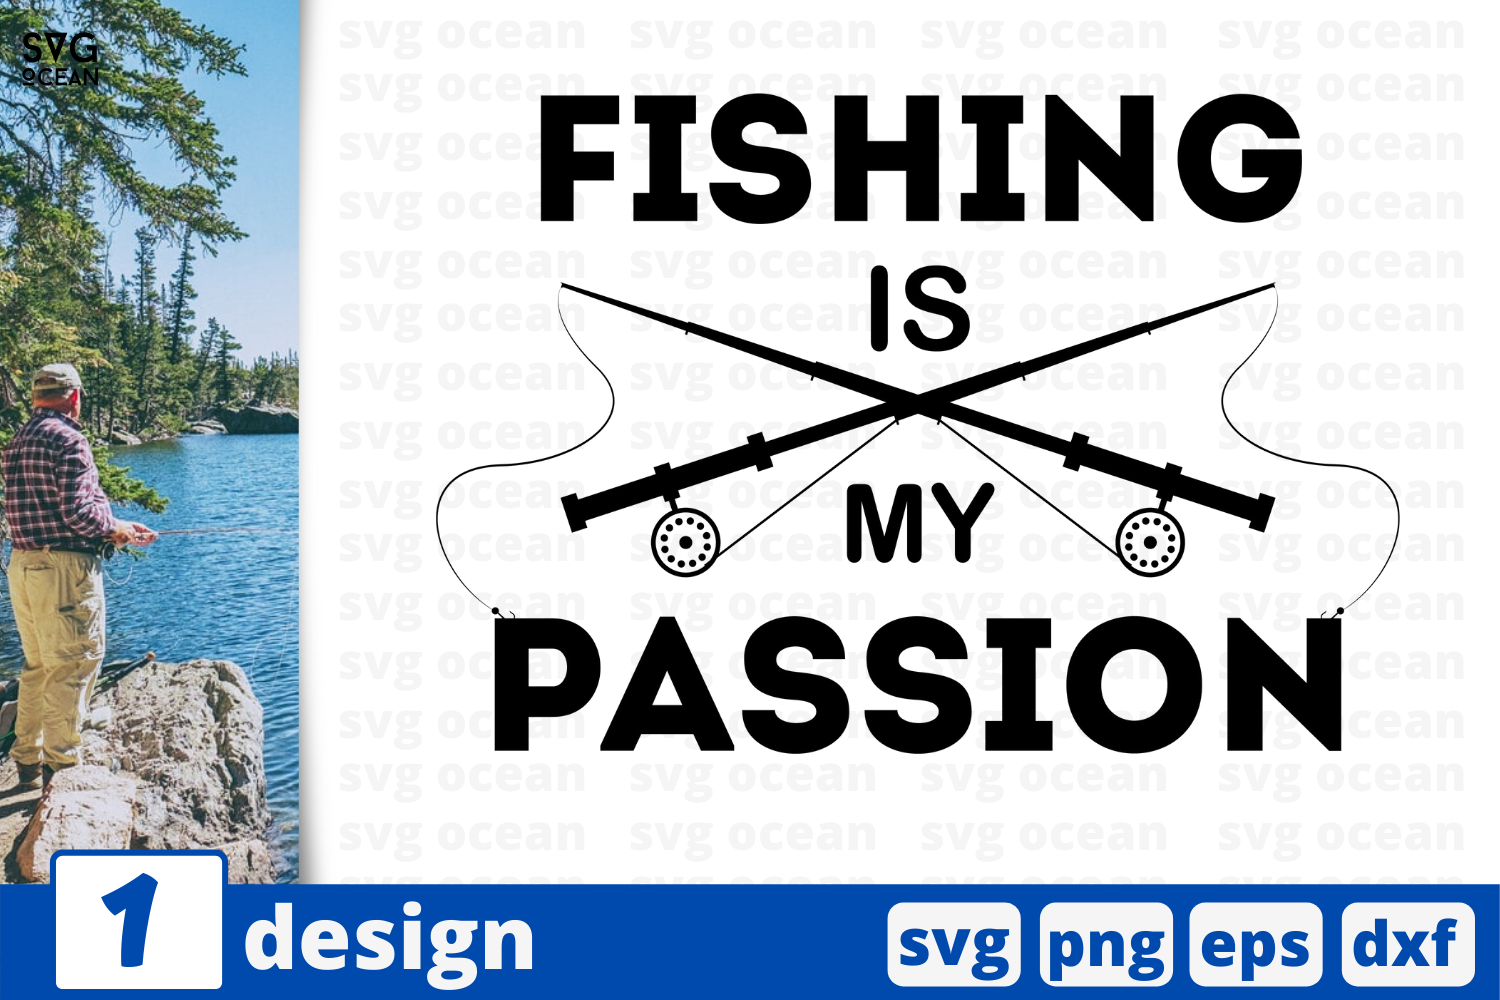 Download Free Fishing Is My Passion Graphic By Svgocean Creative Fabrica for Cricut Explore, Silhouette and other cutting machines.